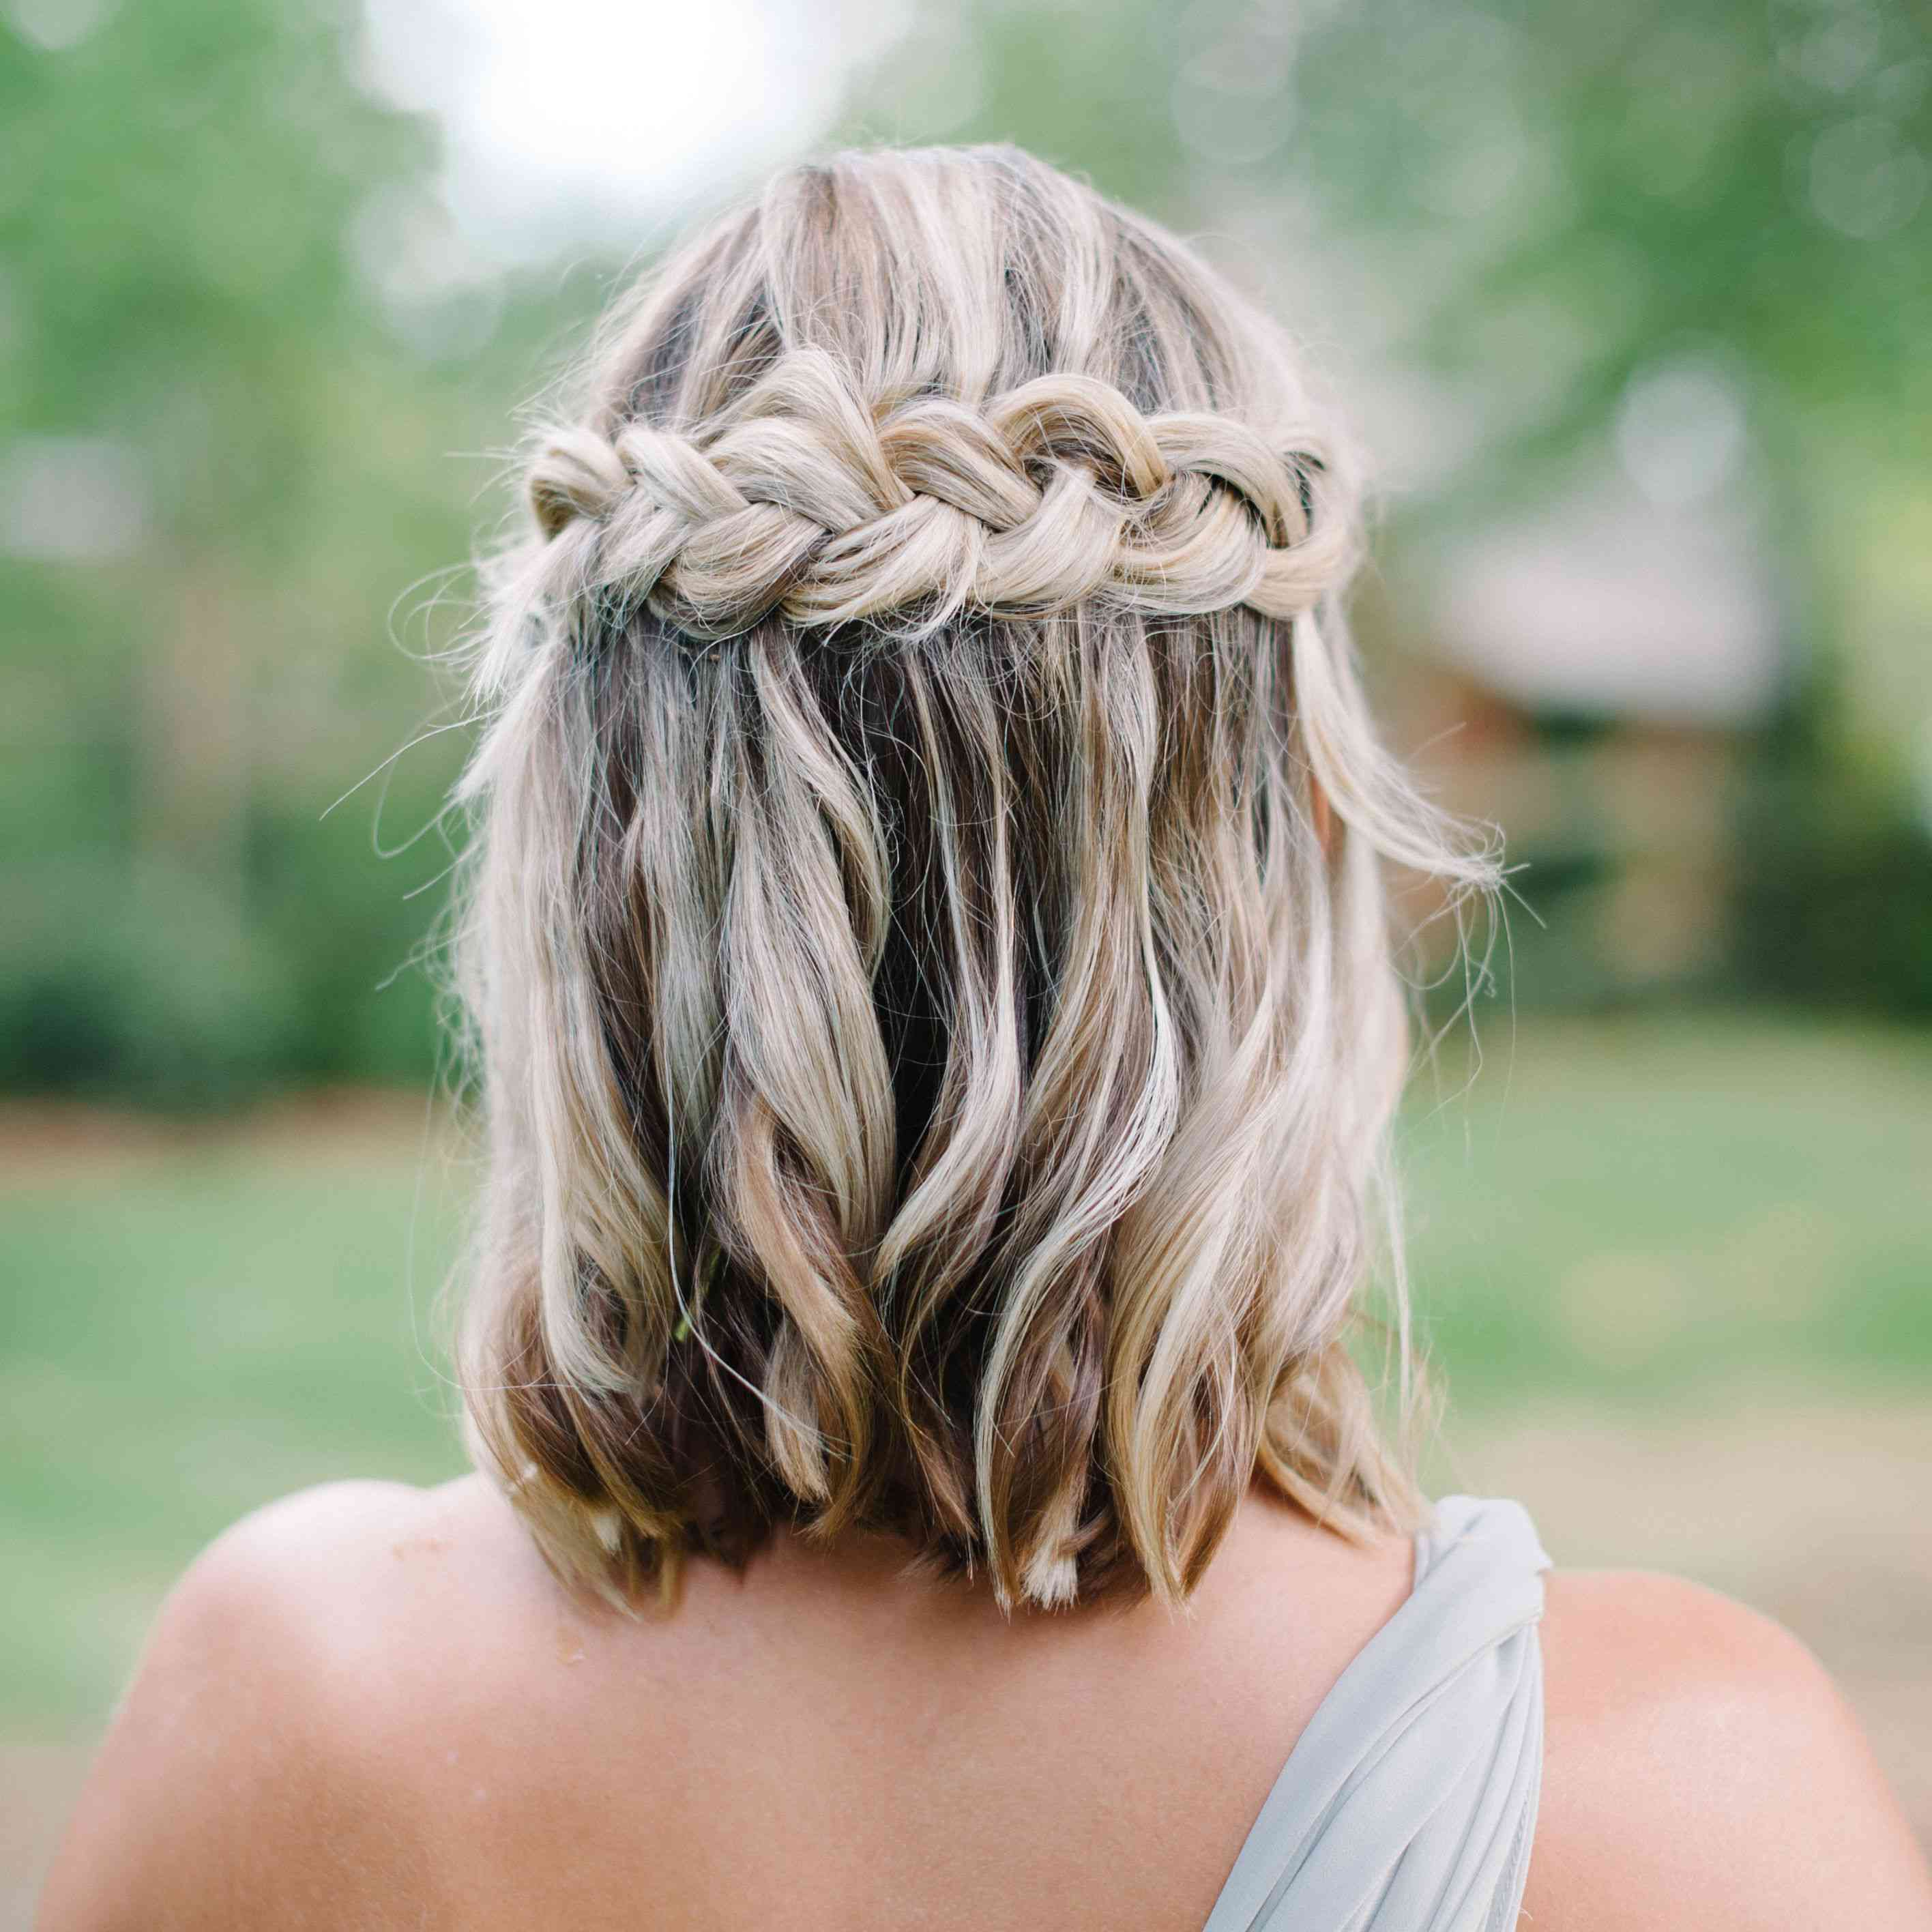 11 Stunning Wedding Hairstyle Ideas for Lobs